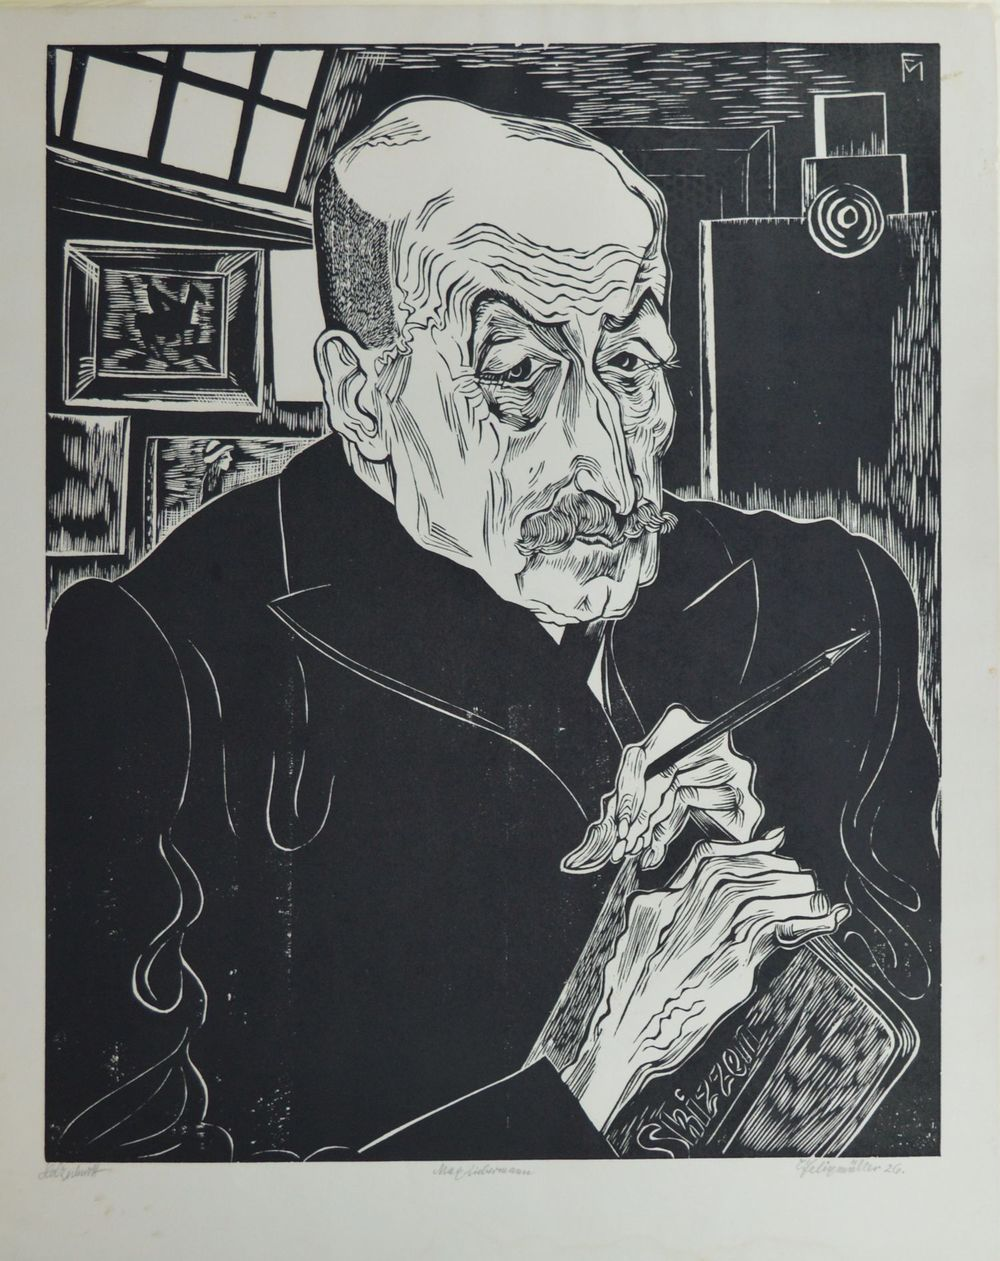 "Conrad Felixmuller (1897 - 1977) Bildnis Max Liebermann, 1926. Woodcut, edition of 70. Image size 15-3/4"" x 19-5/8"". Very fine, dark impression; minor spots & damp stain well outside of image area. An iconic Expressionist work. $2,600"